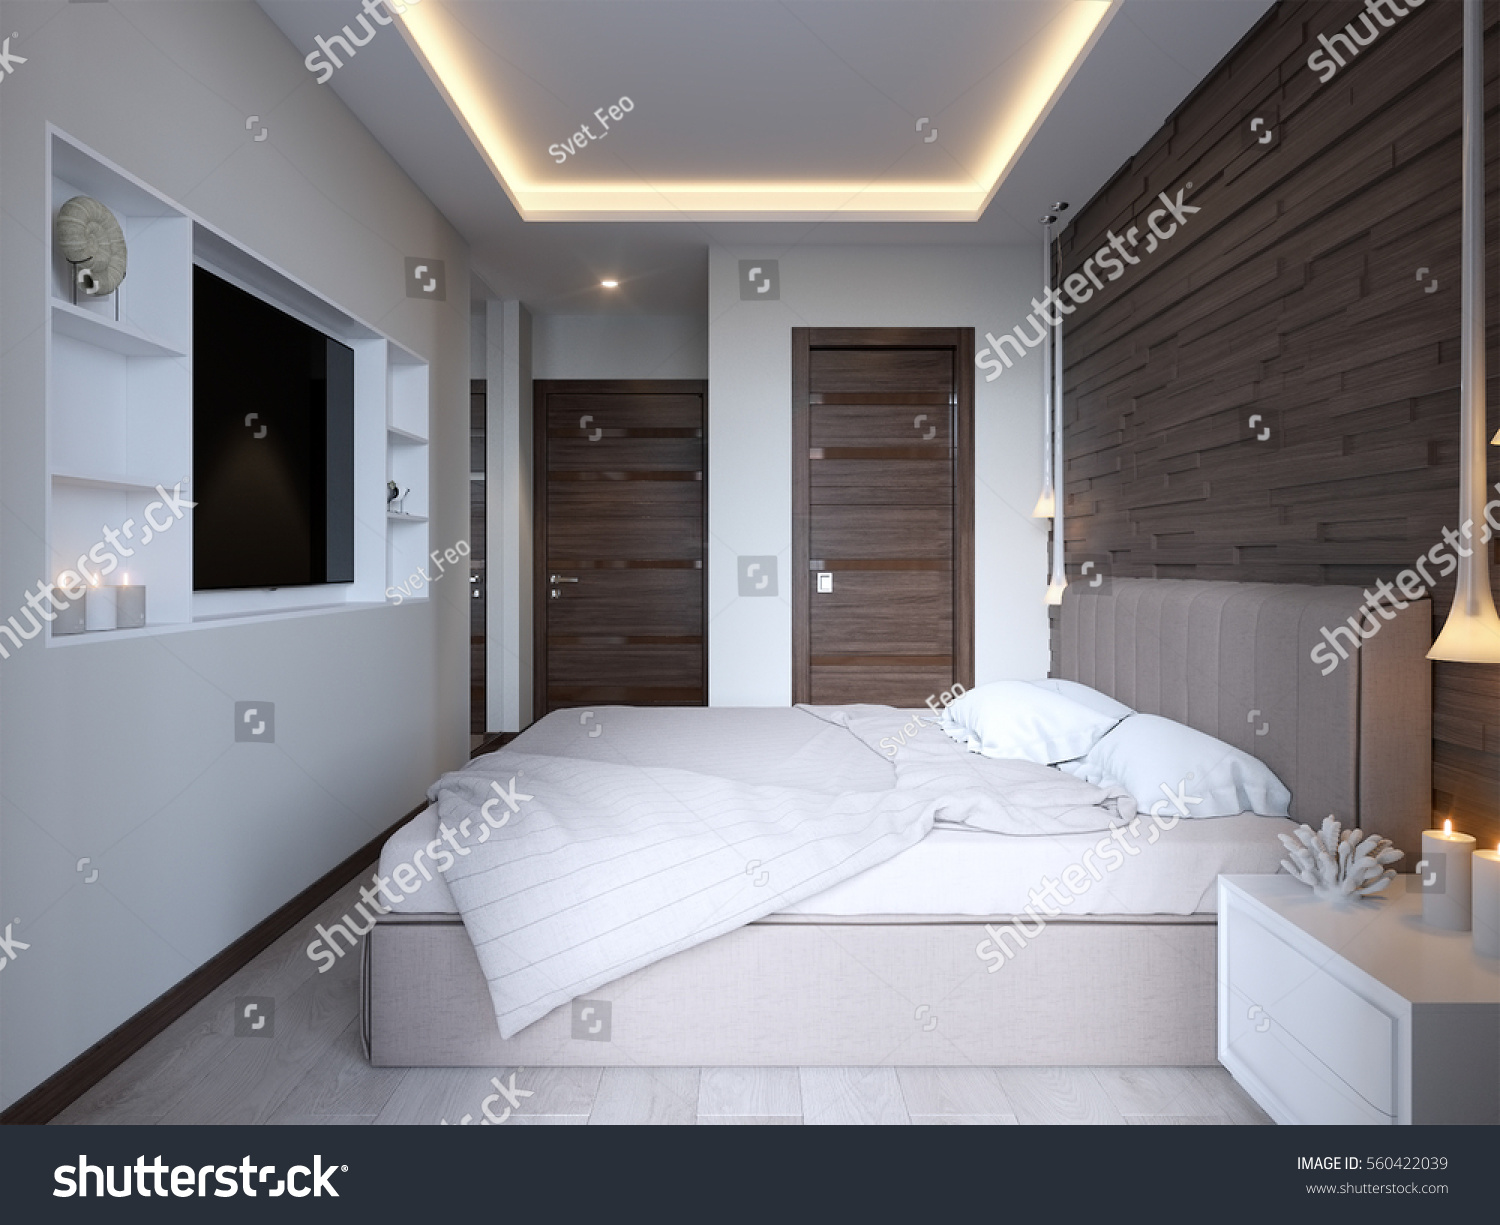 Modern bedroom with wooden 3D panels on the wall  LED Backlight on ceiling   3d. Modern Bedroom Wooden 3d Panels On Stock Illustration 560422039